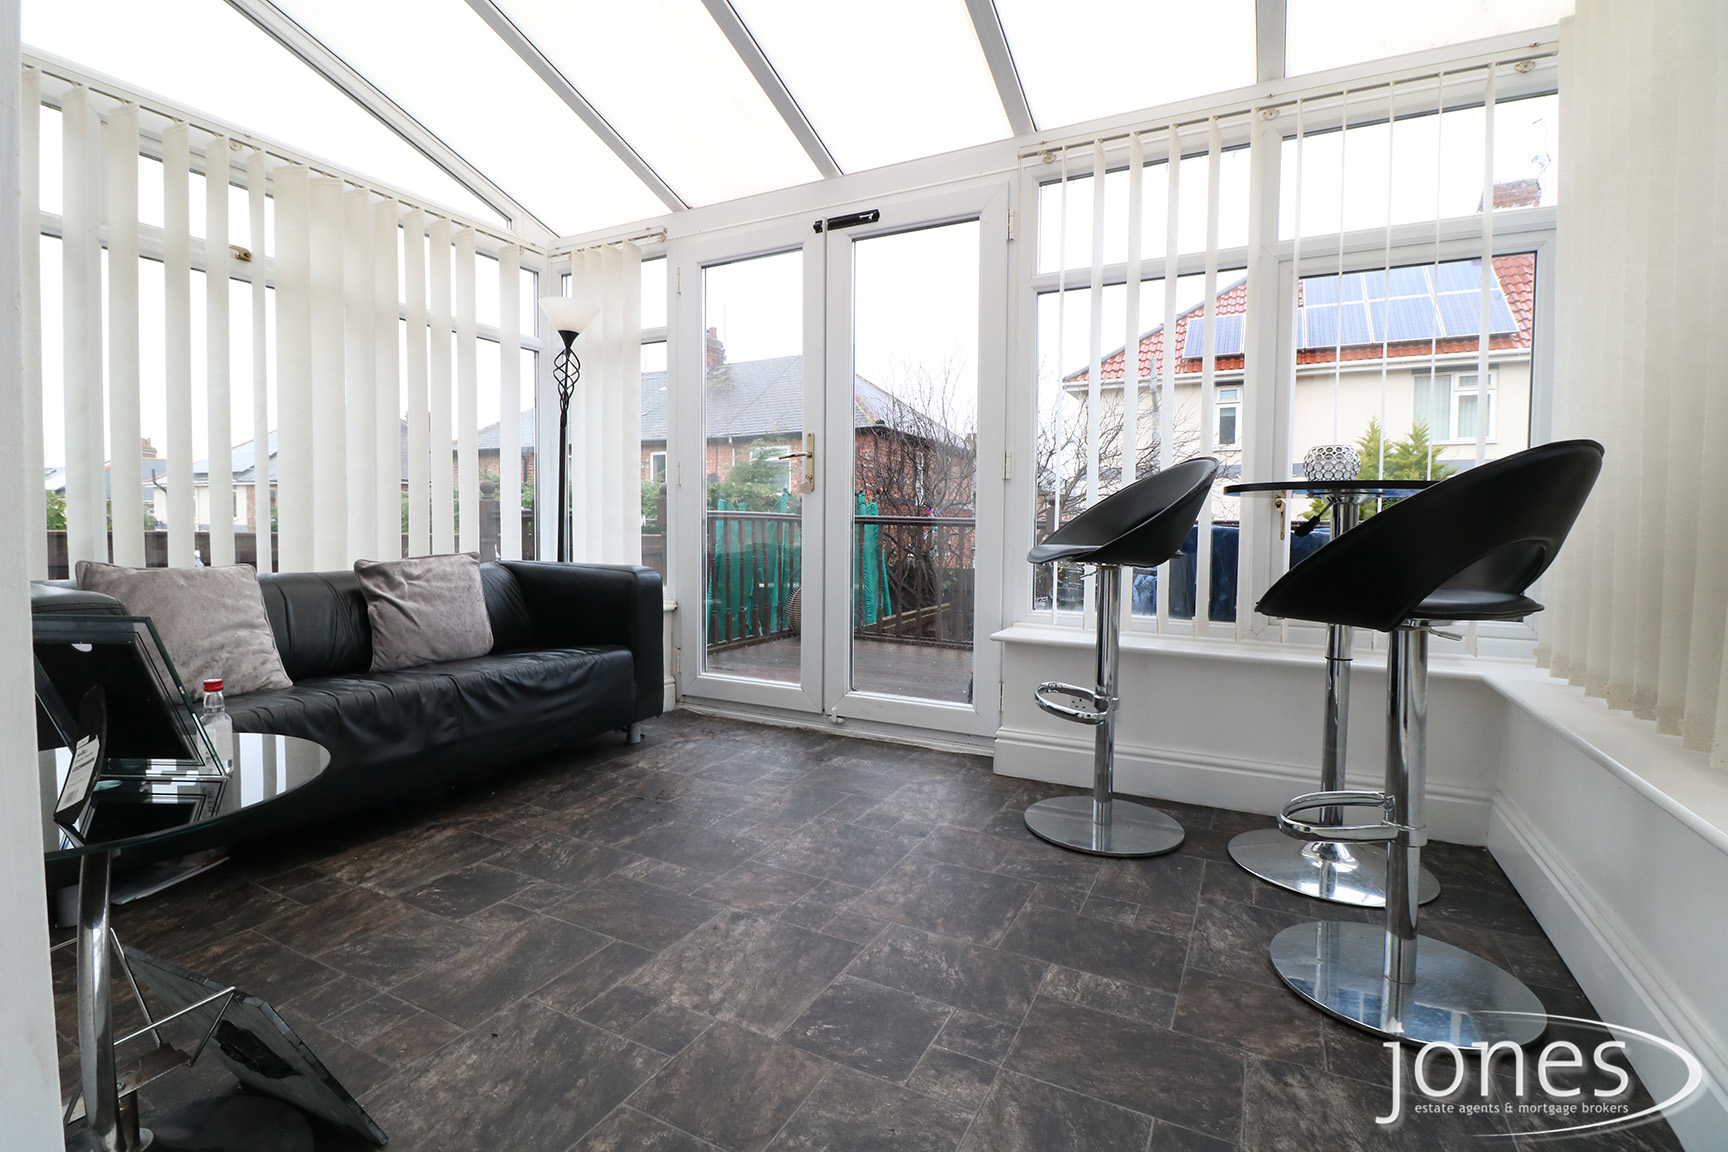 Home for Sale Let - Photo 04 Grange Avenue, Billingham, TS23 1JH